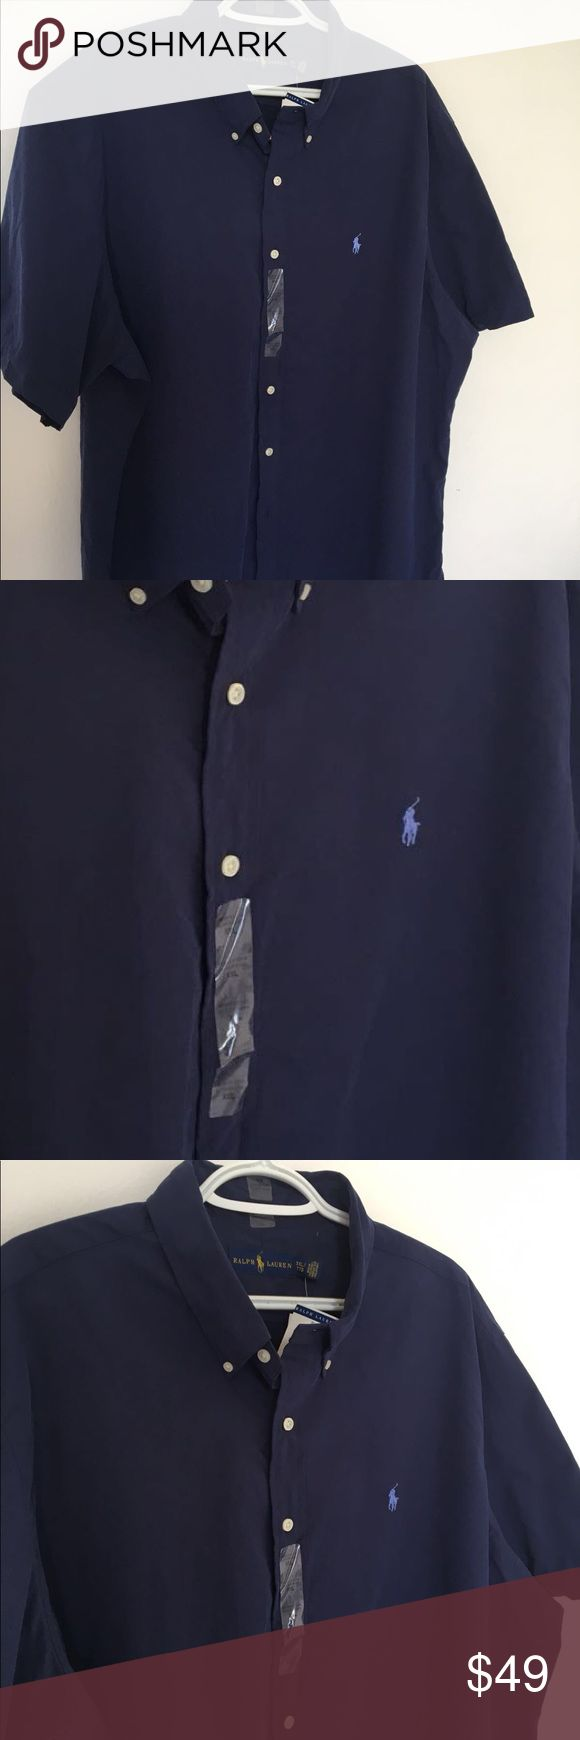 Ralp Lauren Navy Blue Burton down short sleeve Brand Mew With tags Ralp Lauren Navy Blue Burton down. Very comfortable and classy shirt for all those special occasions. Polo by Ralph Lauren Shirts Casual Button Down Shirts